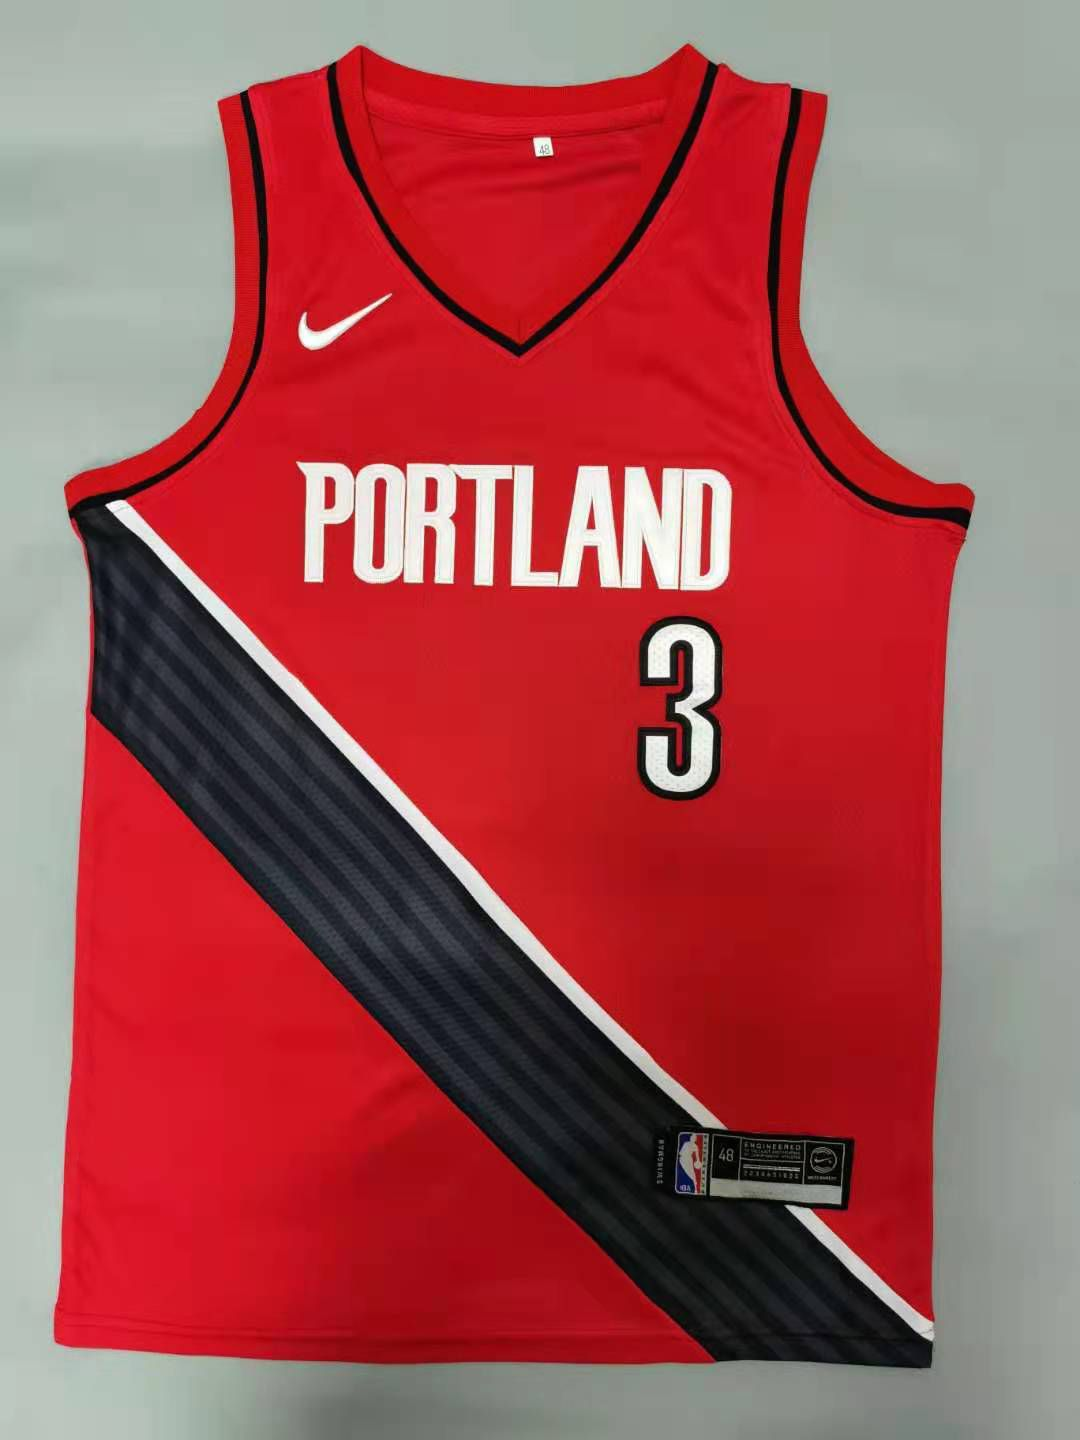 Cheap Men Portland Trail Blazers 3 Mccollum Red 2021 Nike Game NBA Jerseys